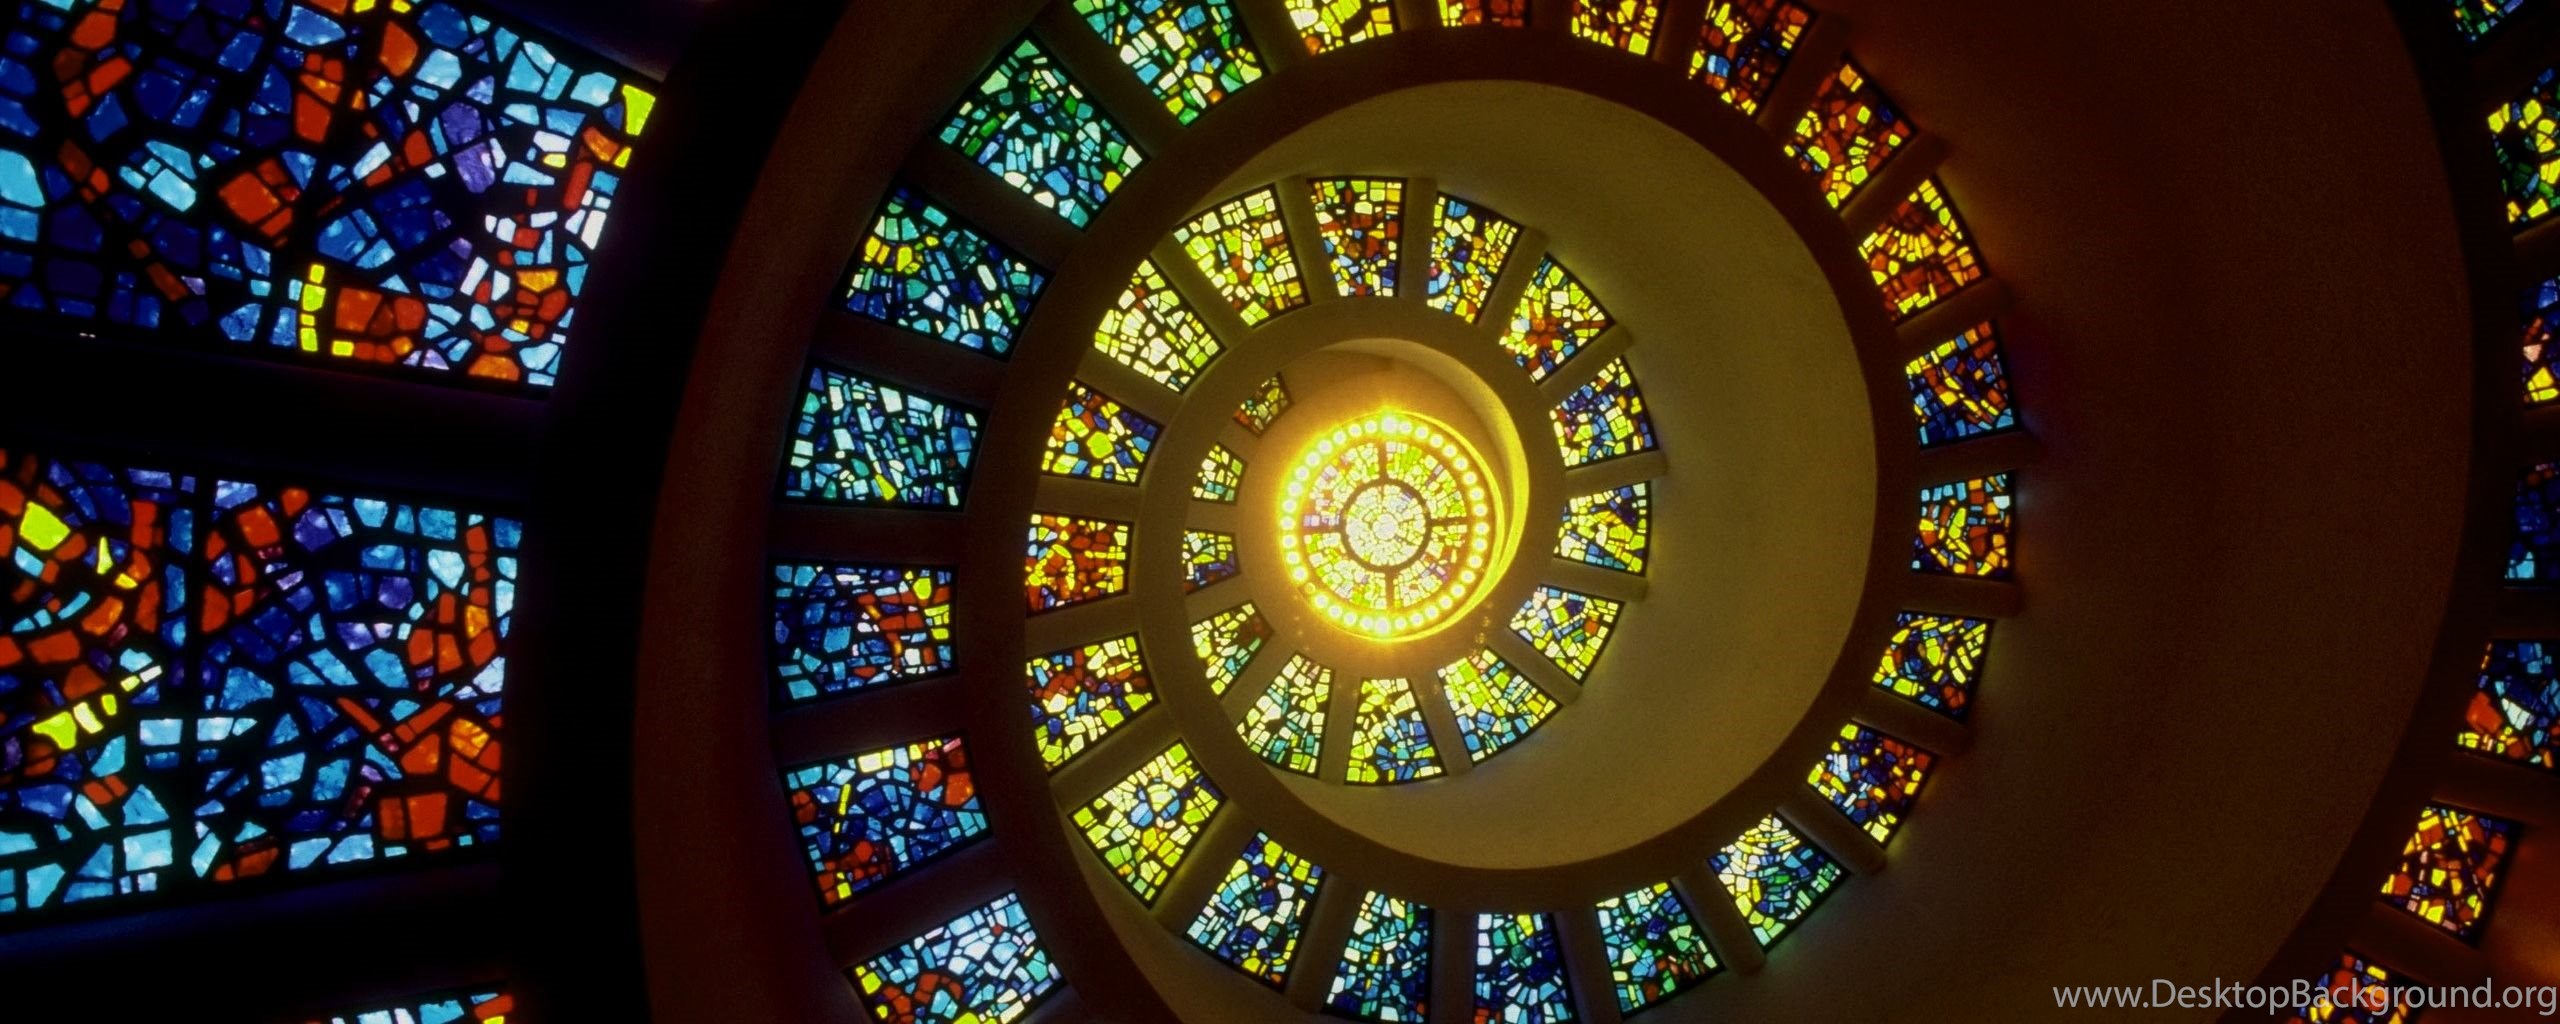 stained glass window wallpapers – 2560×1024 high definition